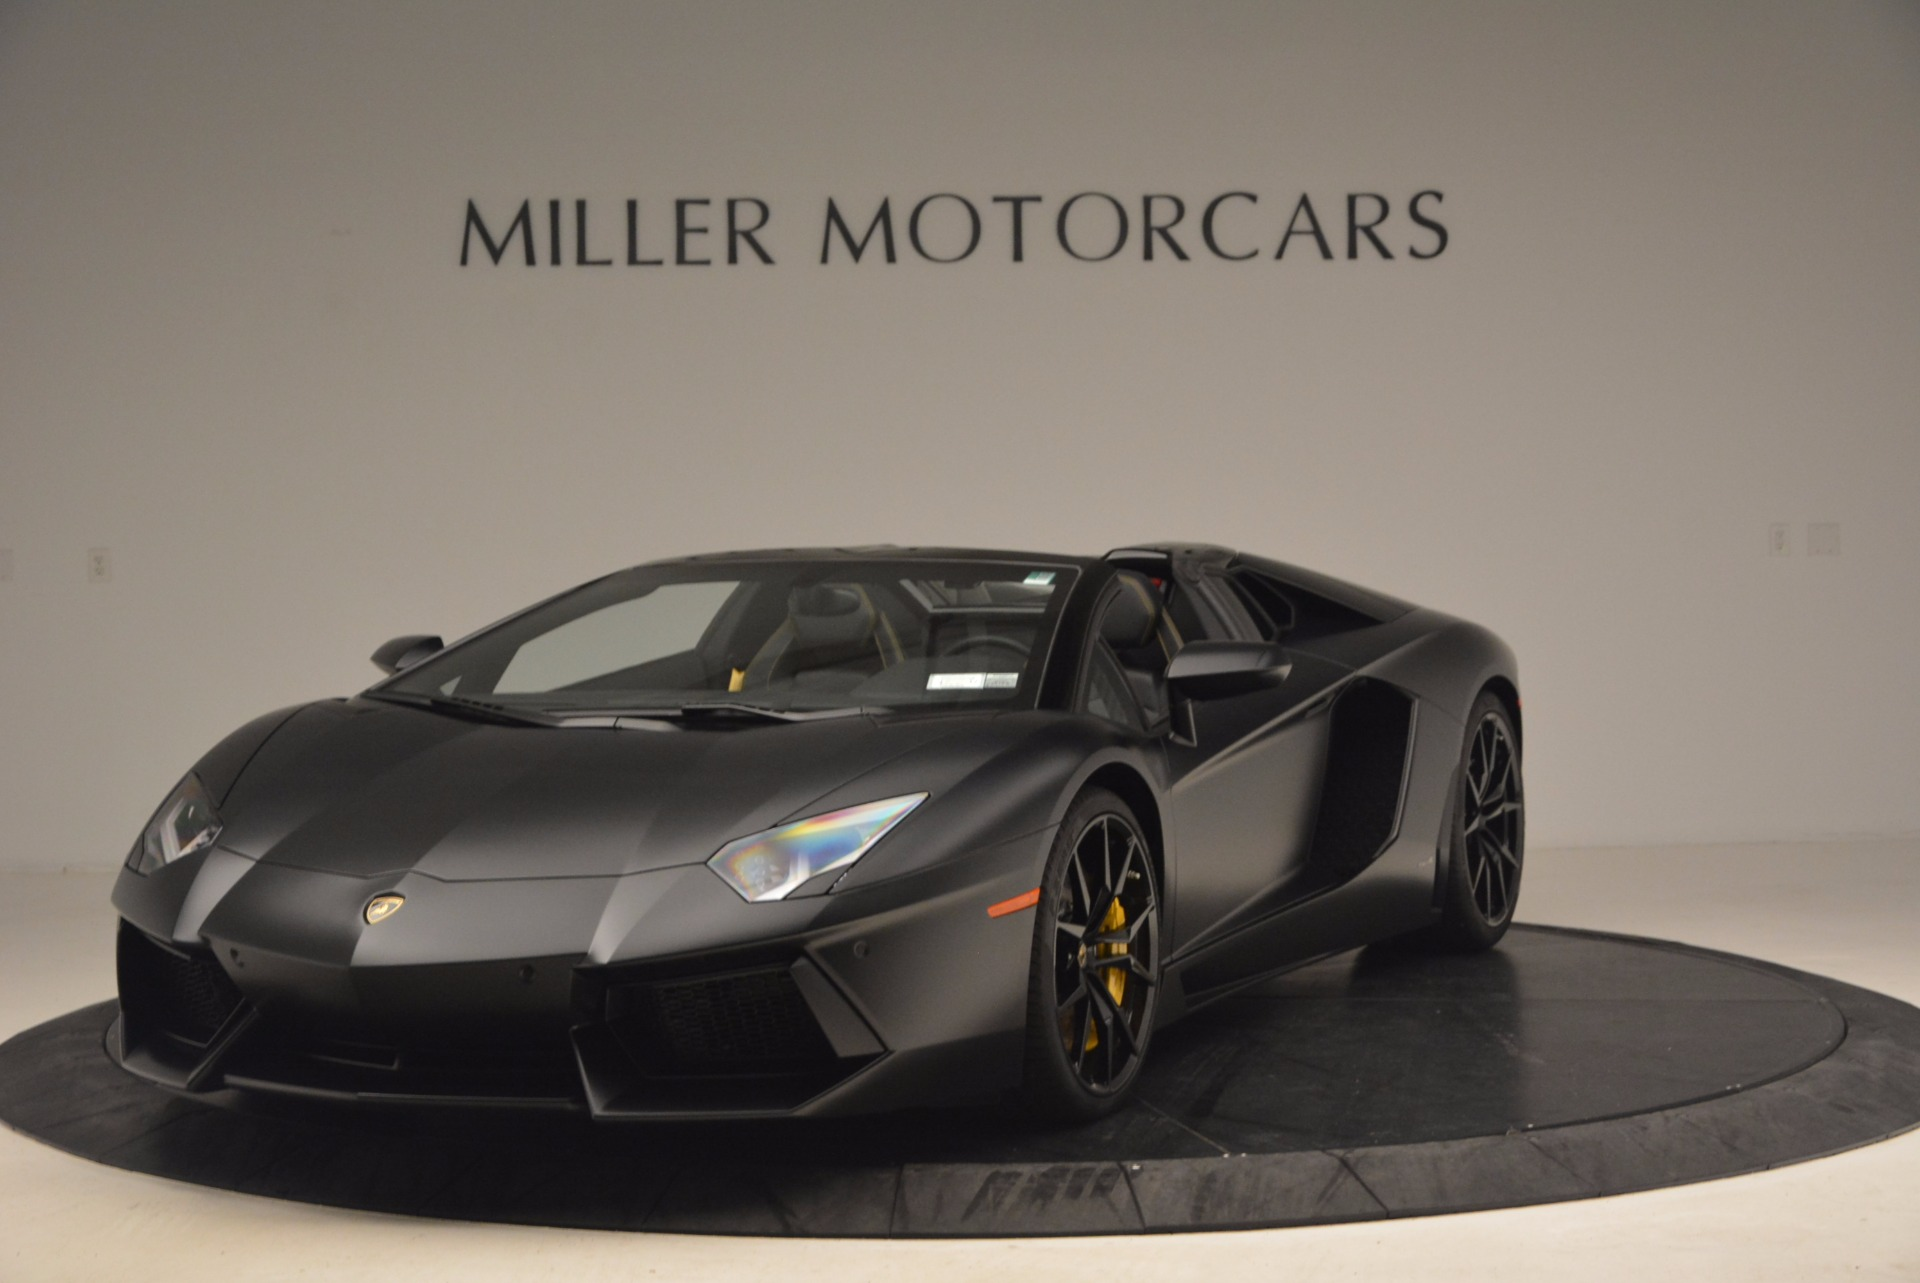 Used 2015 Lamborghini Aventador LP 700-4 for sale Sold at Bentley Greenwich in Greenwich CT 06830 1